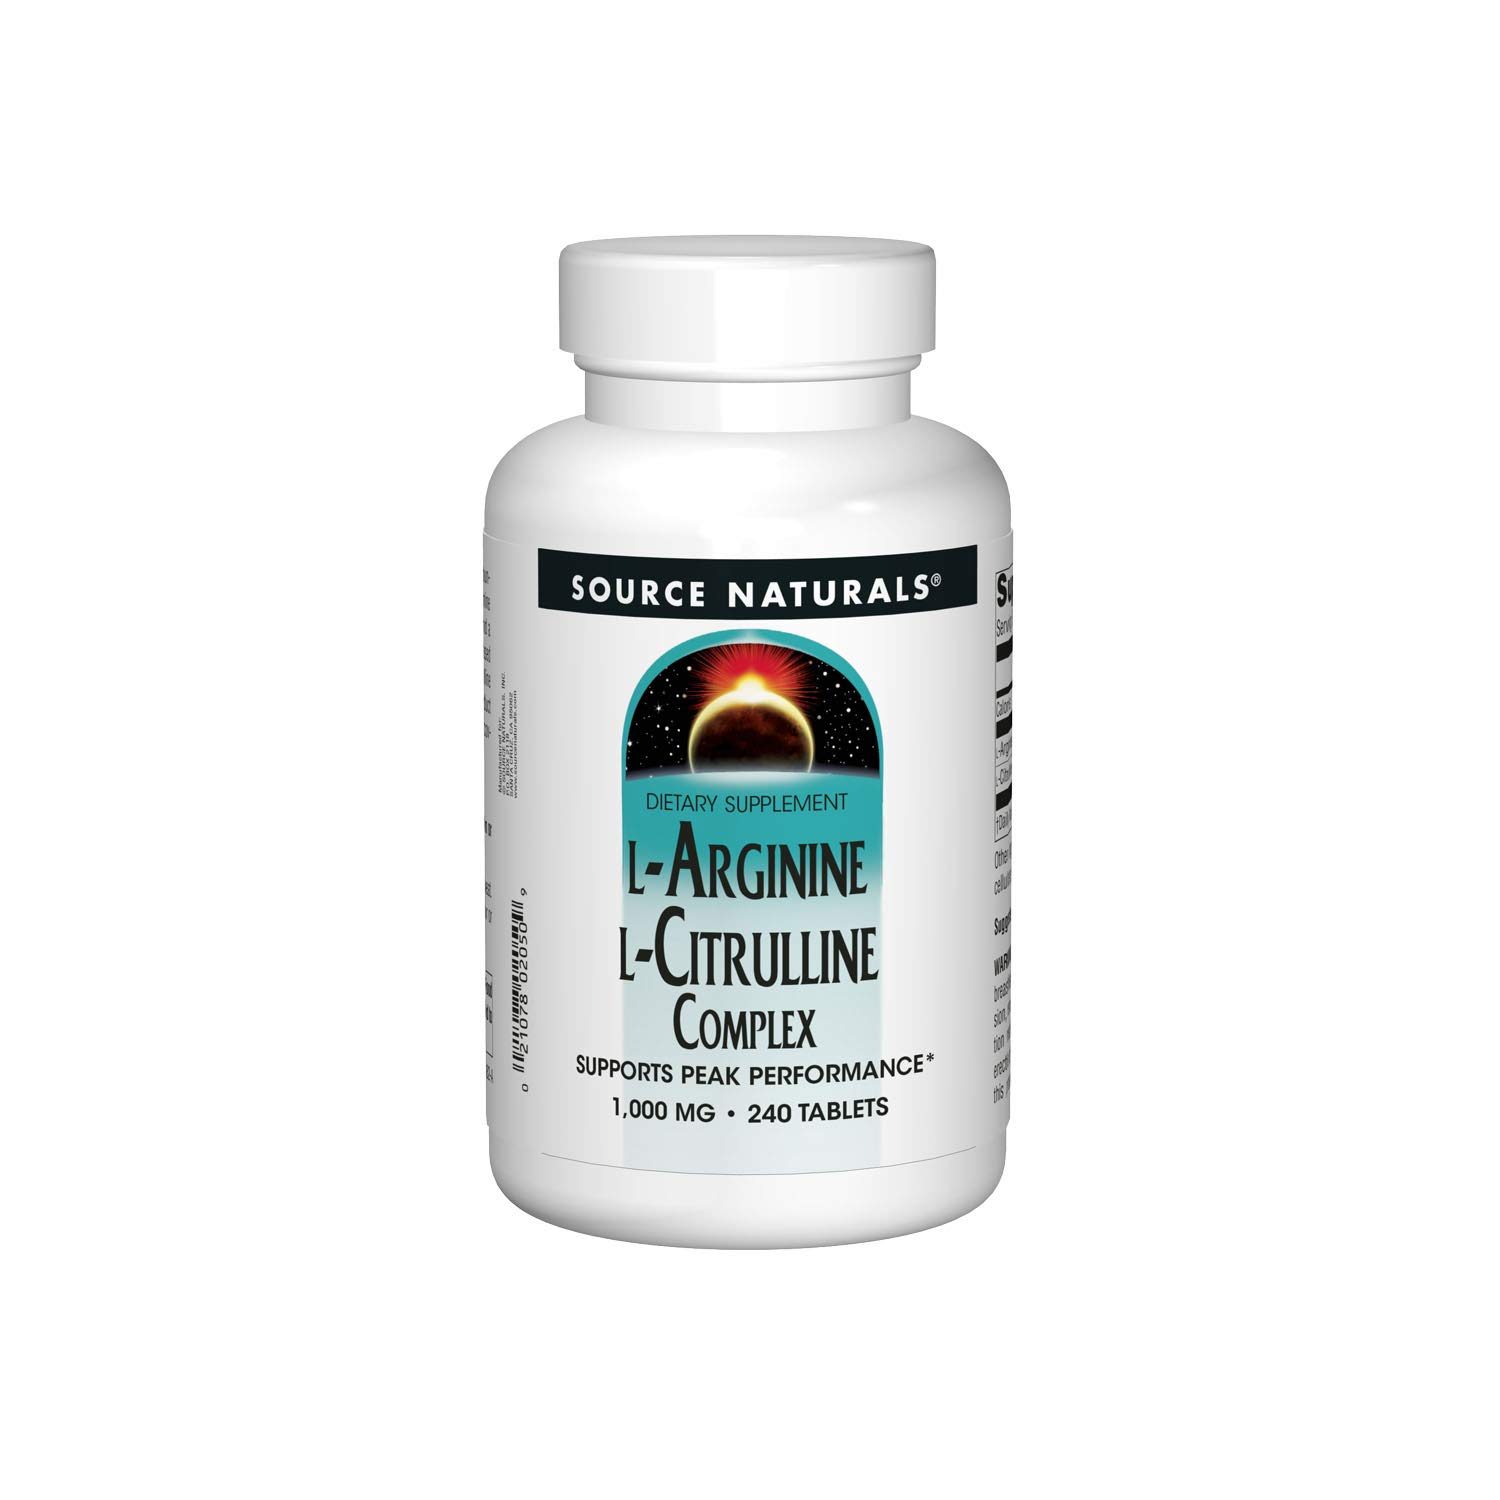 Source Naturals L-Arginine L-Citrulline Complex 1000mg Essential Amino Acid Supplement - 240 Tablets by Source Naturals